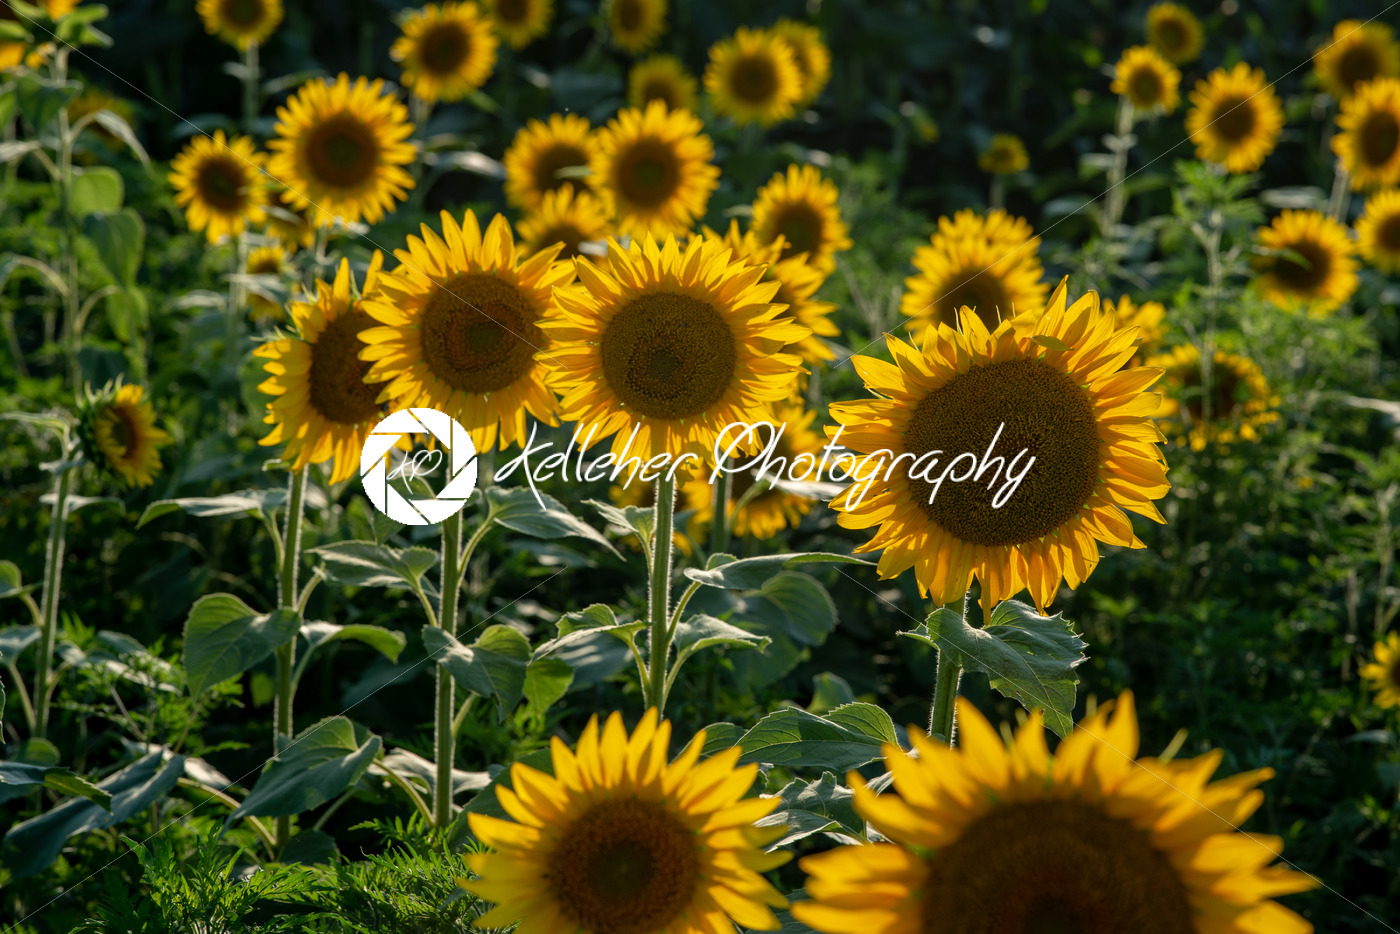 Sun flower Field during sunset hour - Kelleher Photography Store